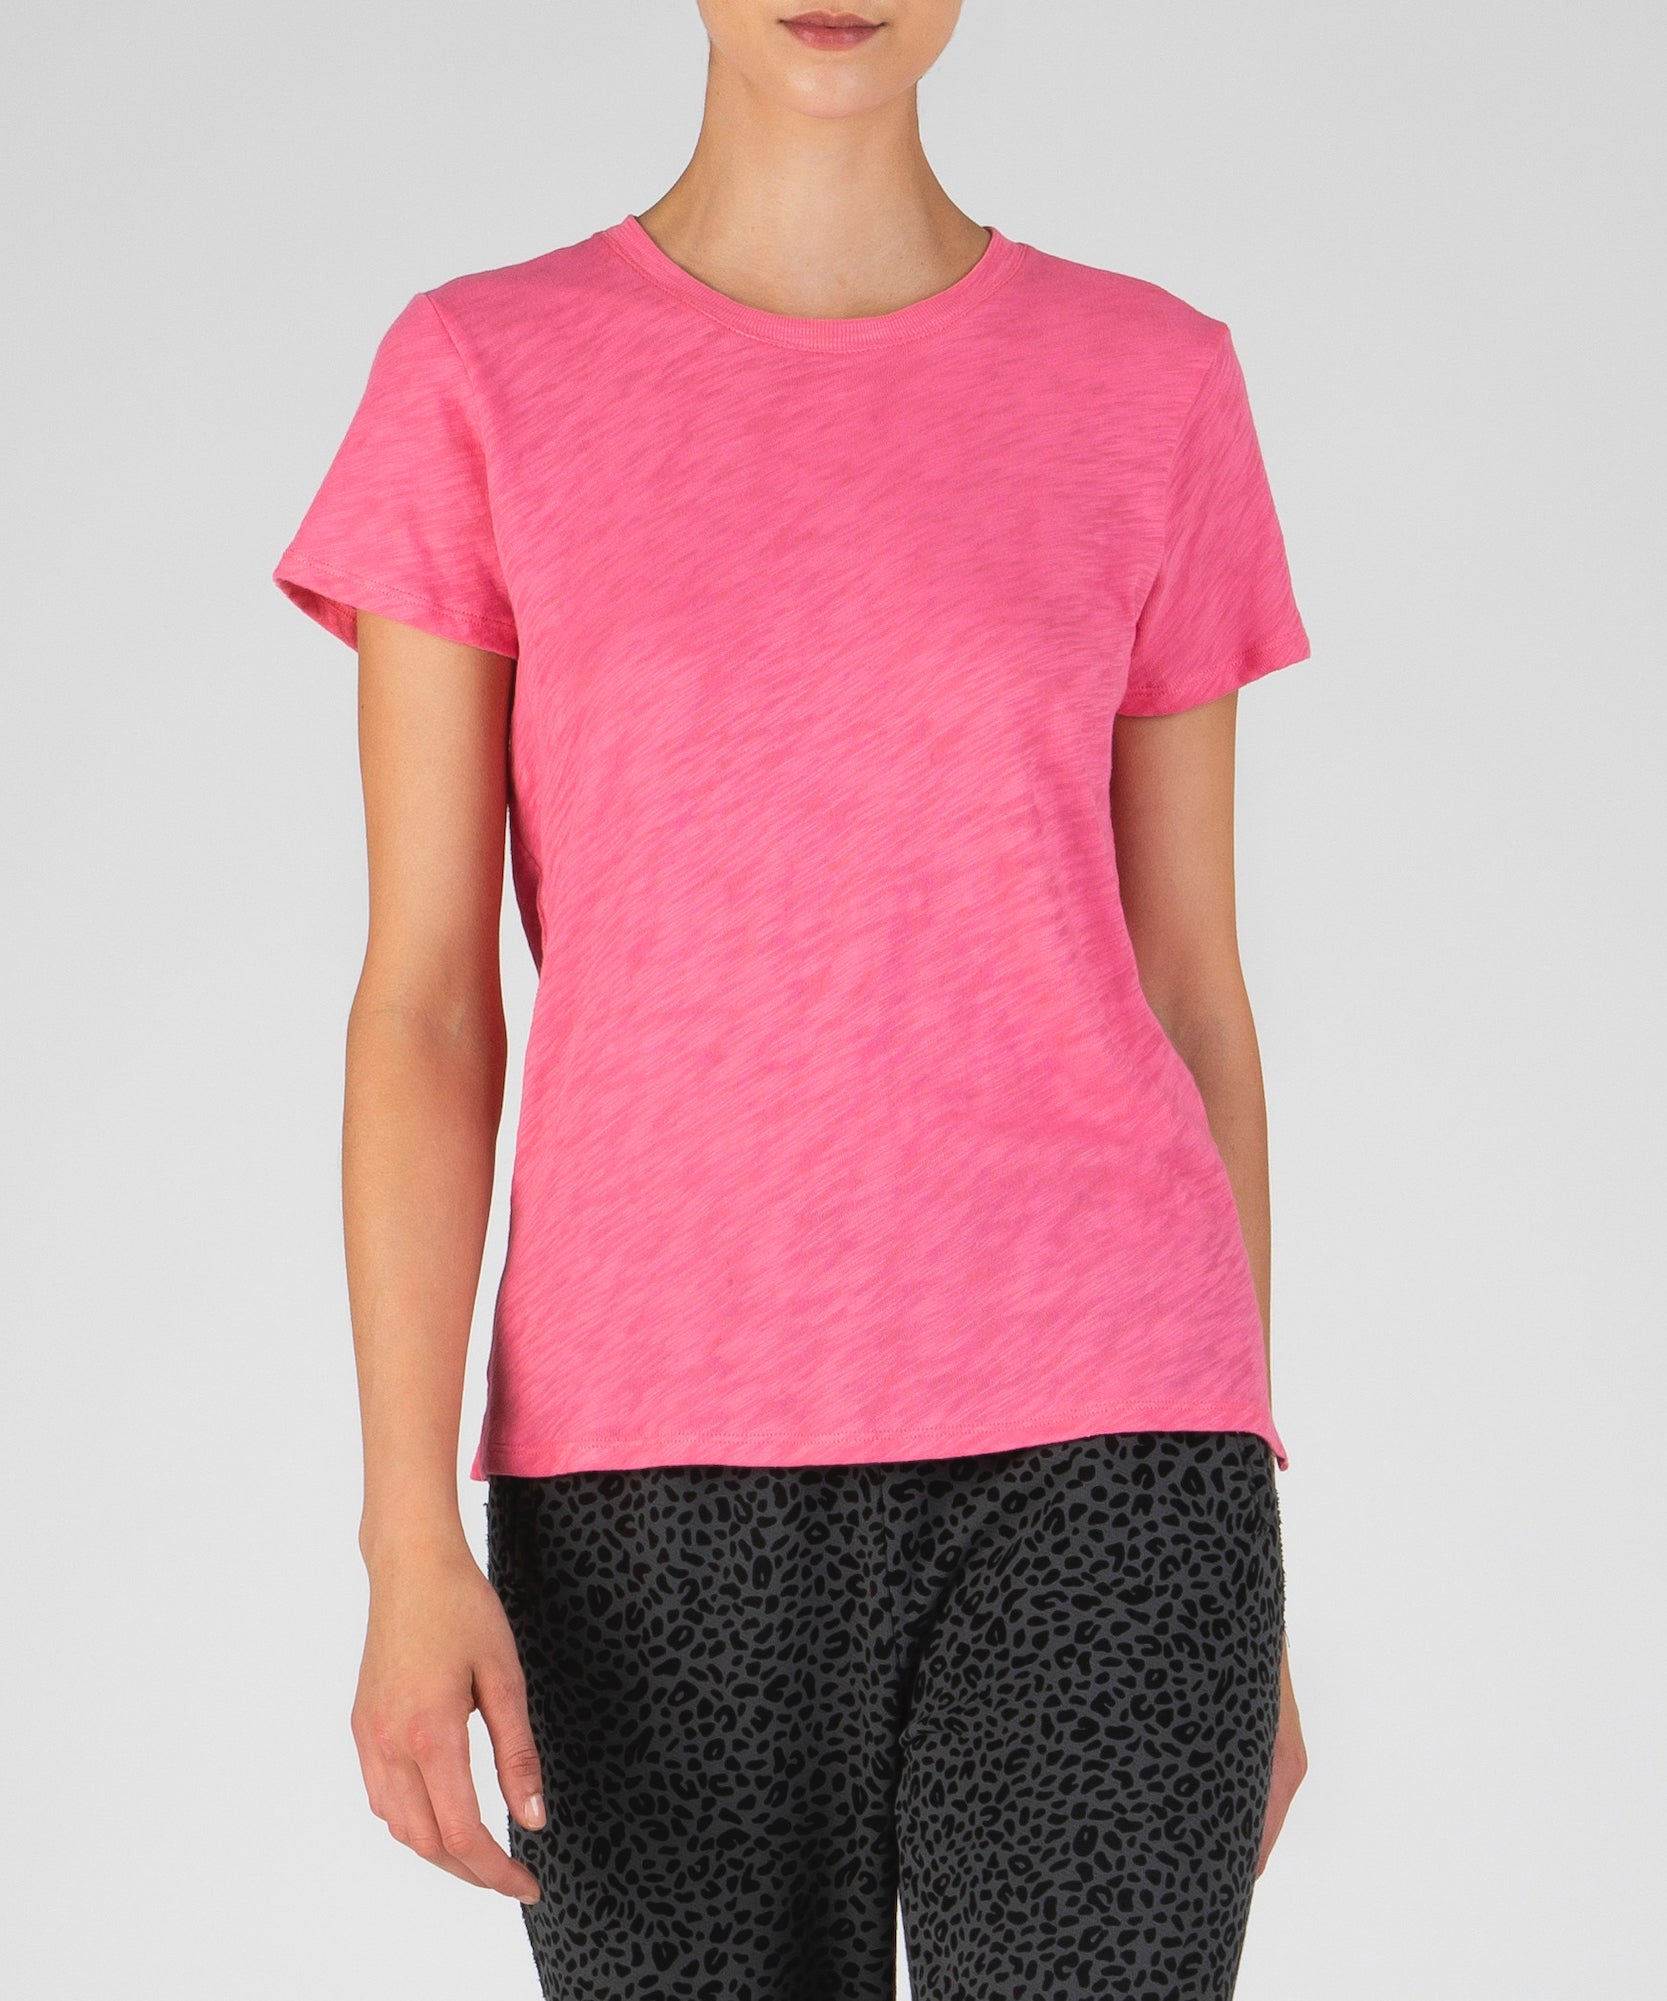 Pink Slub Jersey Schoolboy Crew Neck Tee - Women's Cotton Short Sleeve Tee by ATM Anthony Thomas Melillo